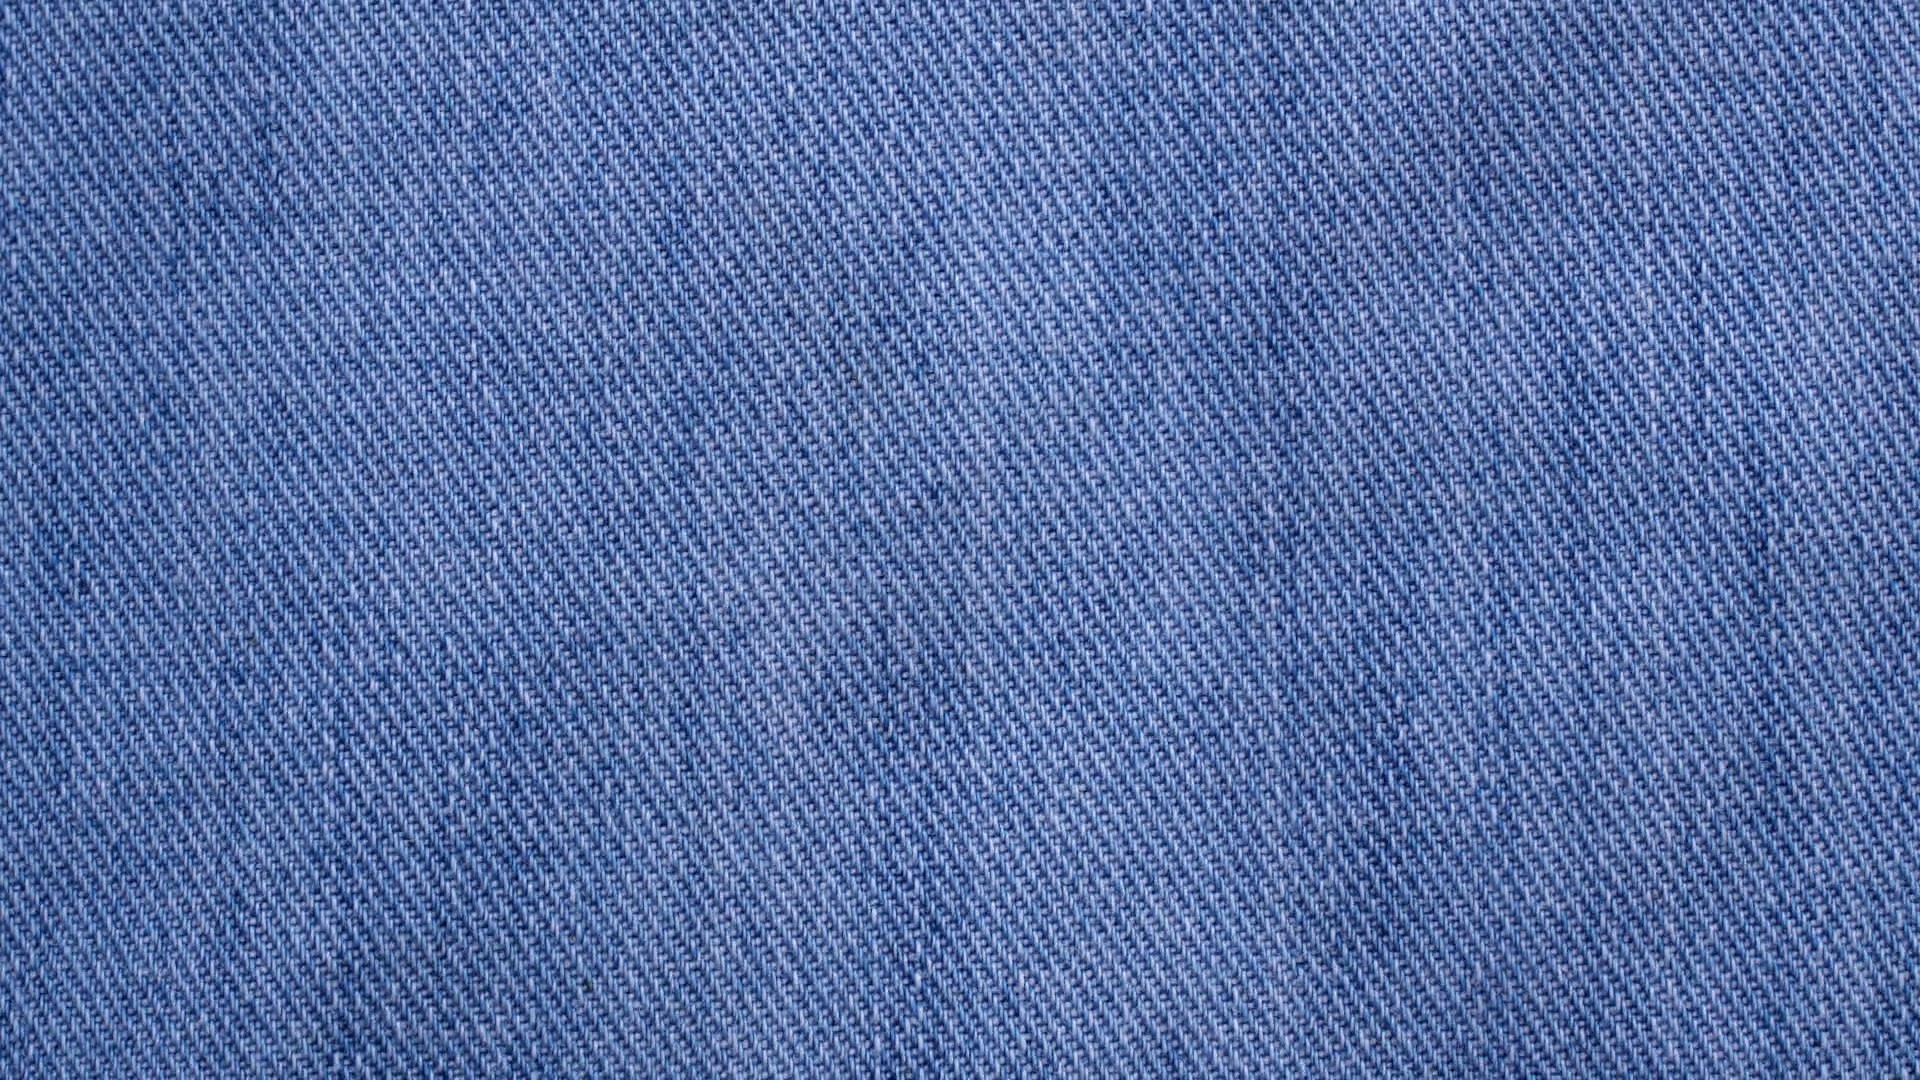 footage blue denim or jeans texture background. Stock Video Footage.